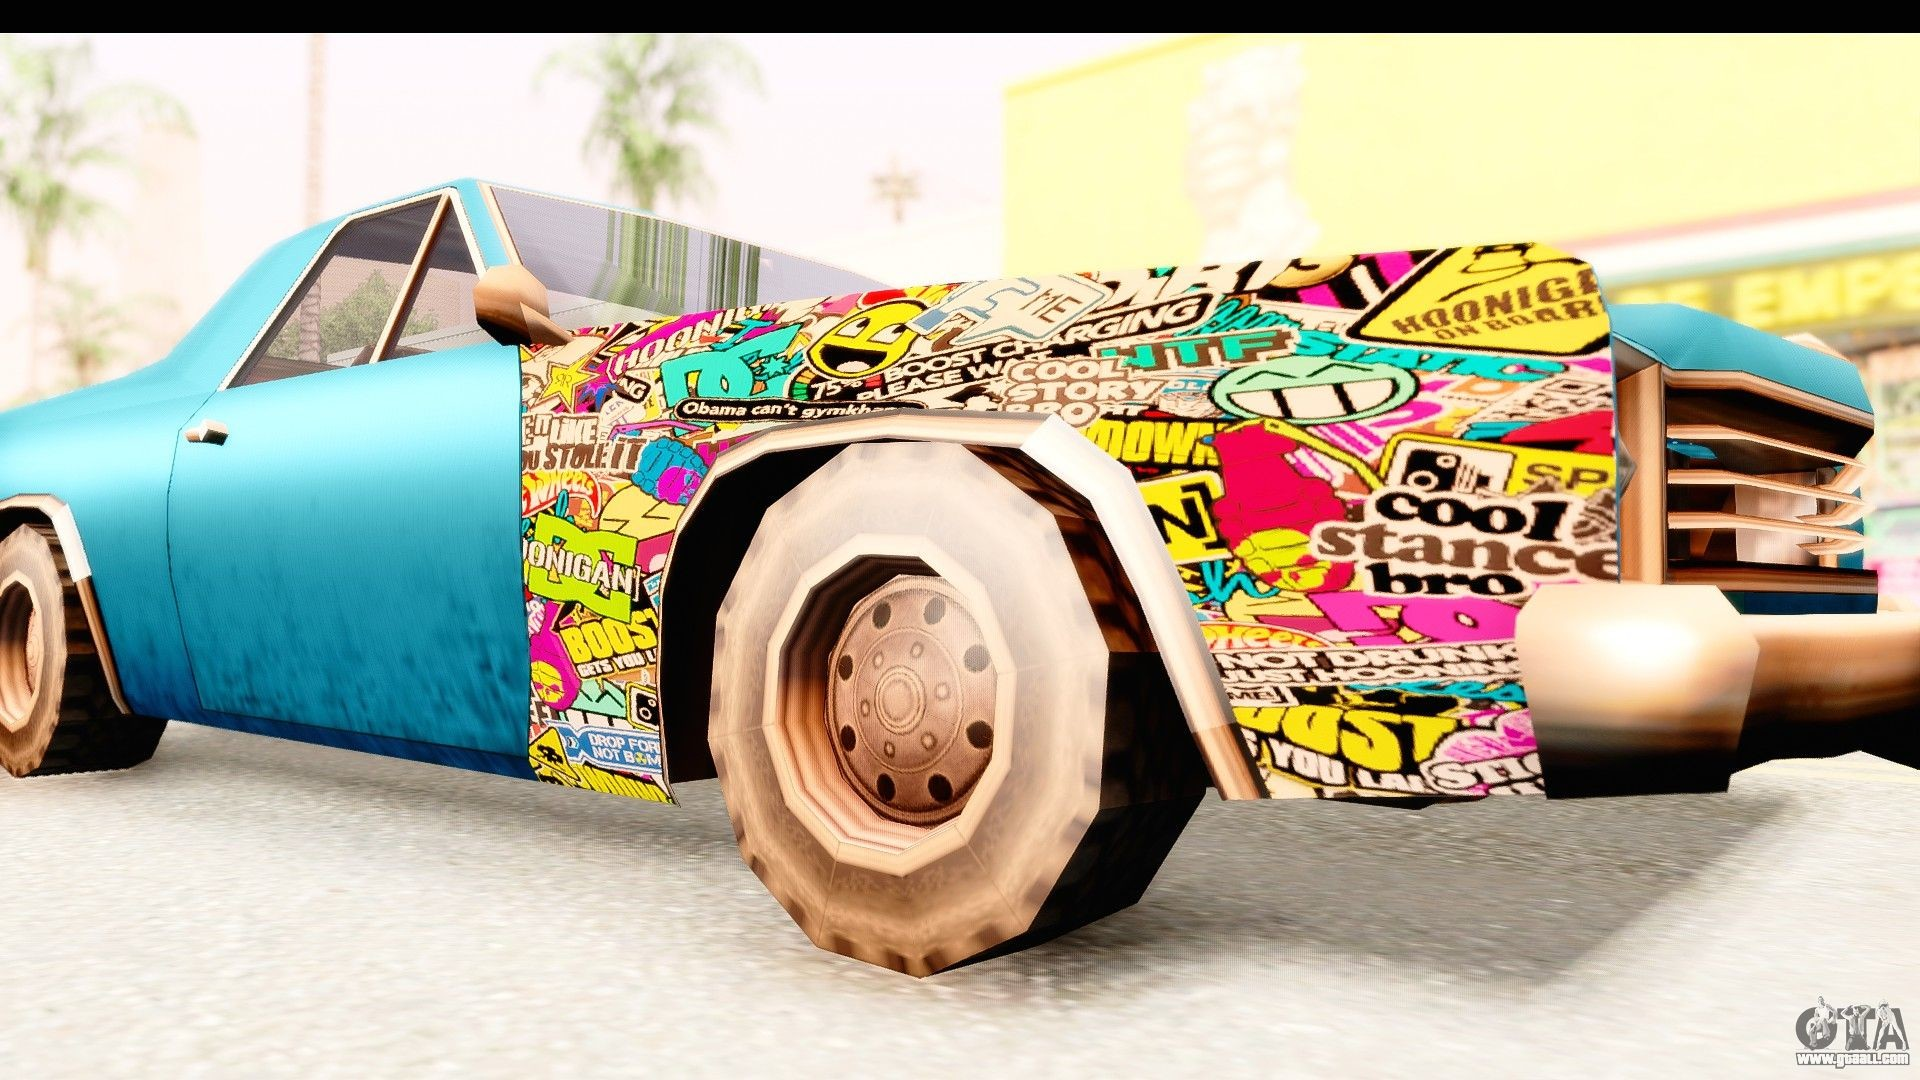 1920x1080 Picador Sticker Bomb for GTA San Andreas back view .